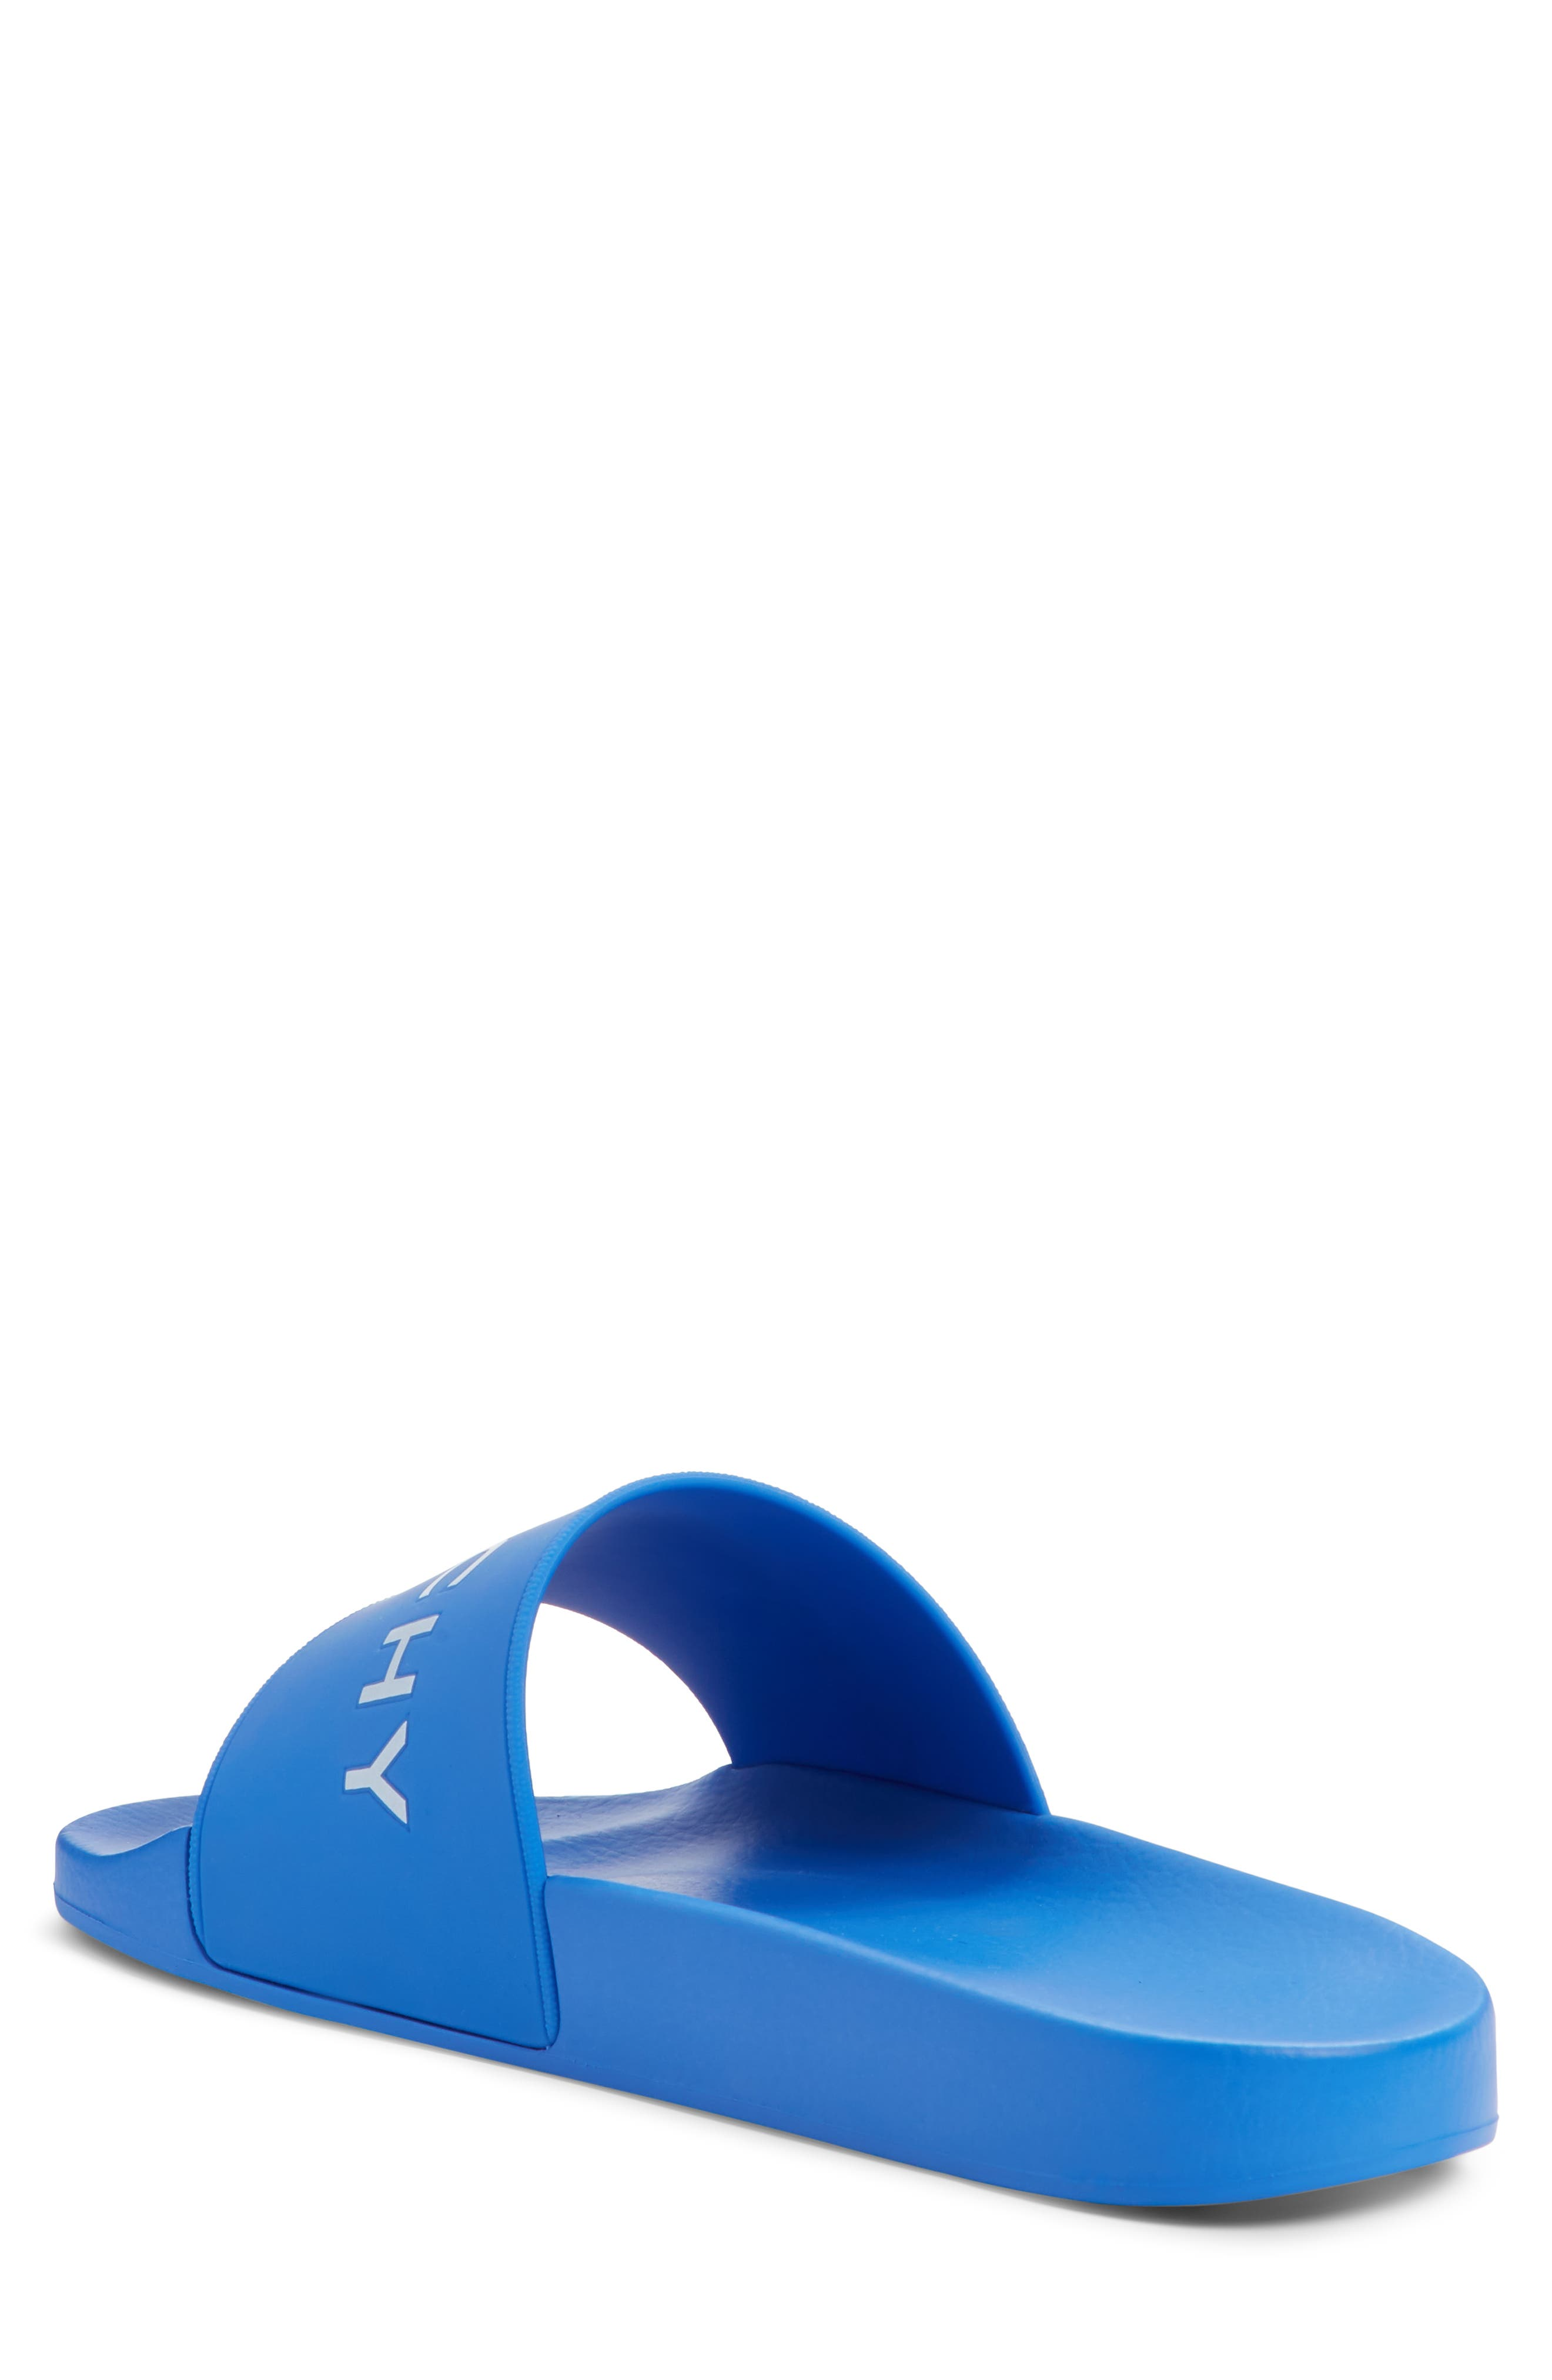 GIVENCHY, Slide Sandal, Alternate thumbnail 2, color, ELECTRIC BLUE/ WHITE